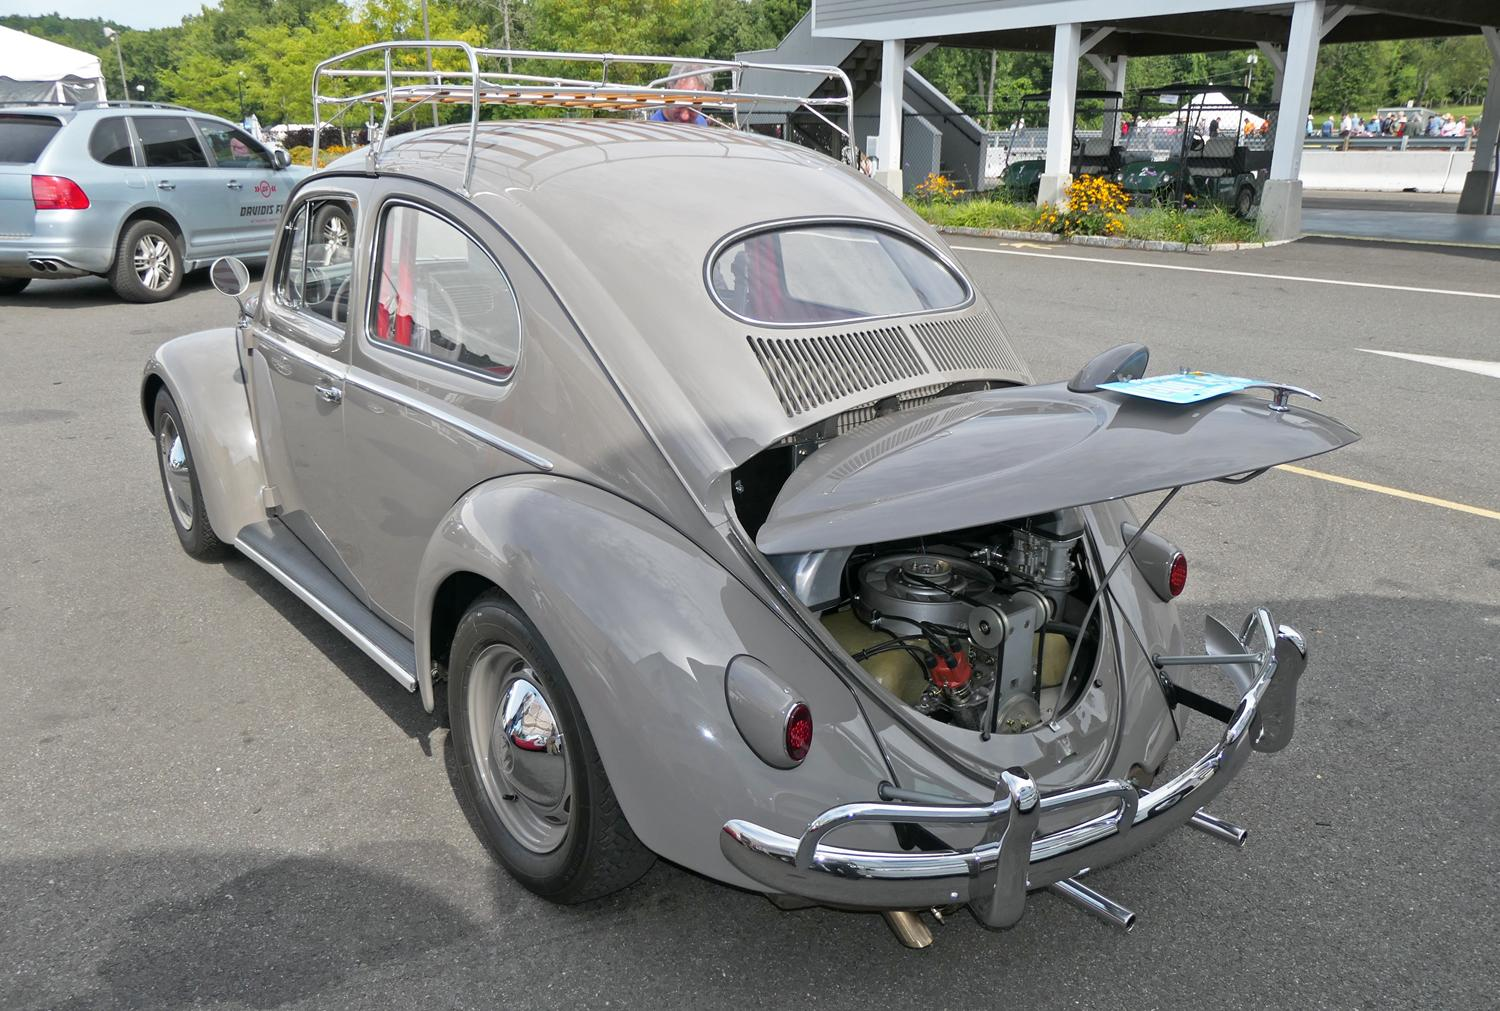 Amazing 1956 Beetle at Lime Rock Vintage Festival, CT 9-1-19